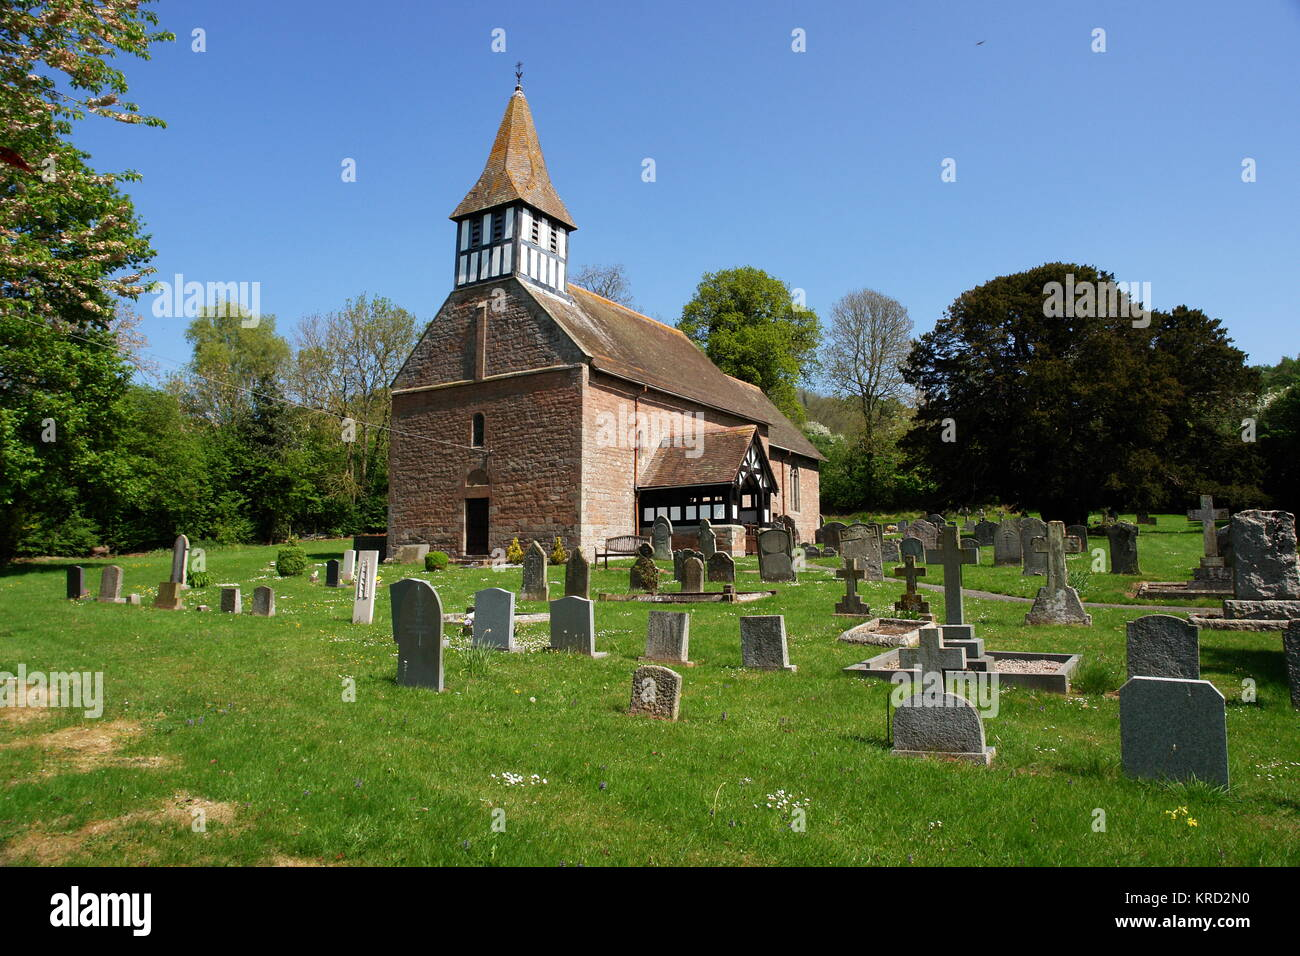 St Michael and All Angels Church, a Norman church in Castle Frome, Herefordshire, seen from across the churchyard. Stock Photo